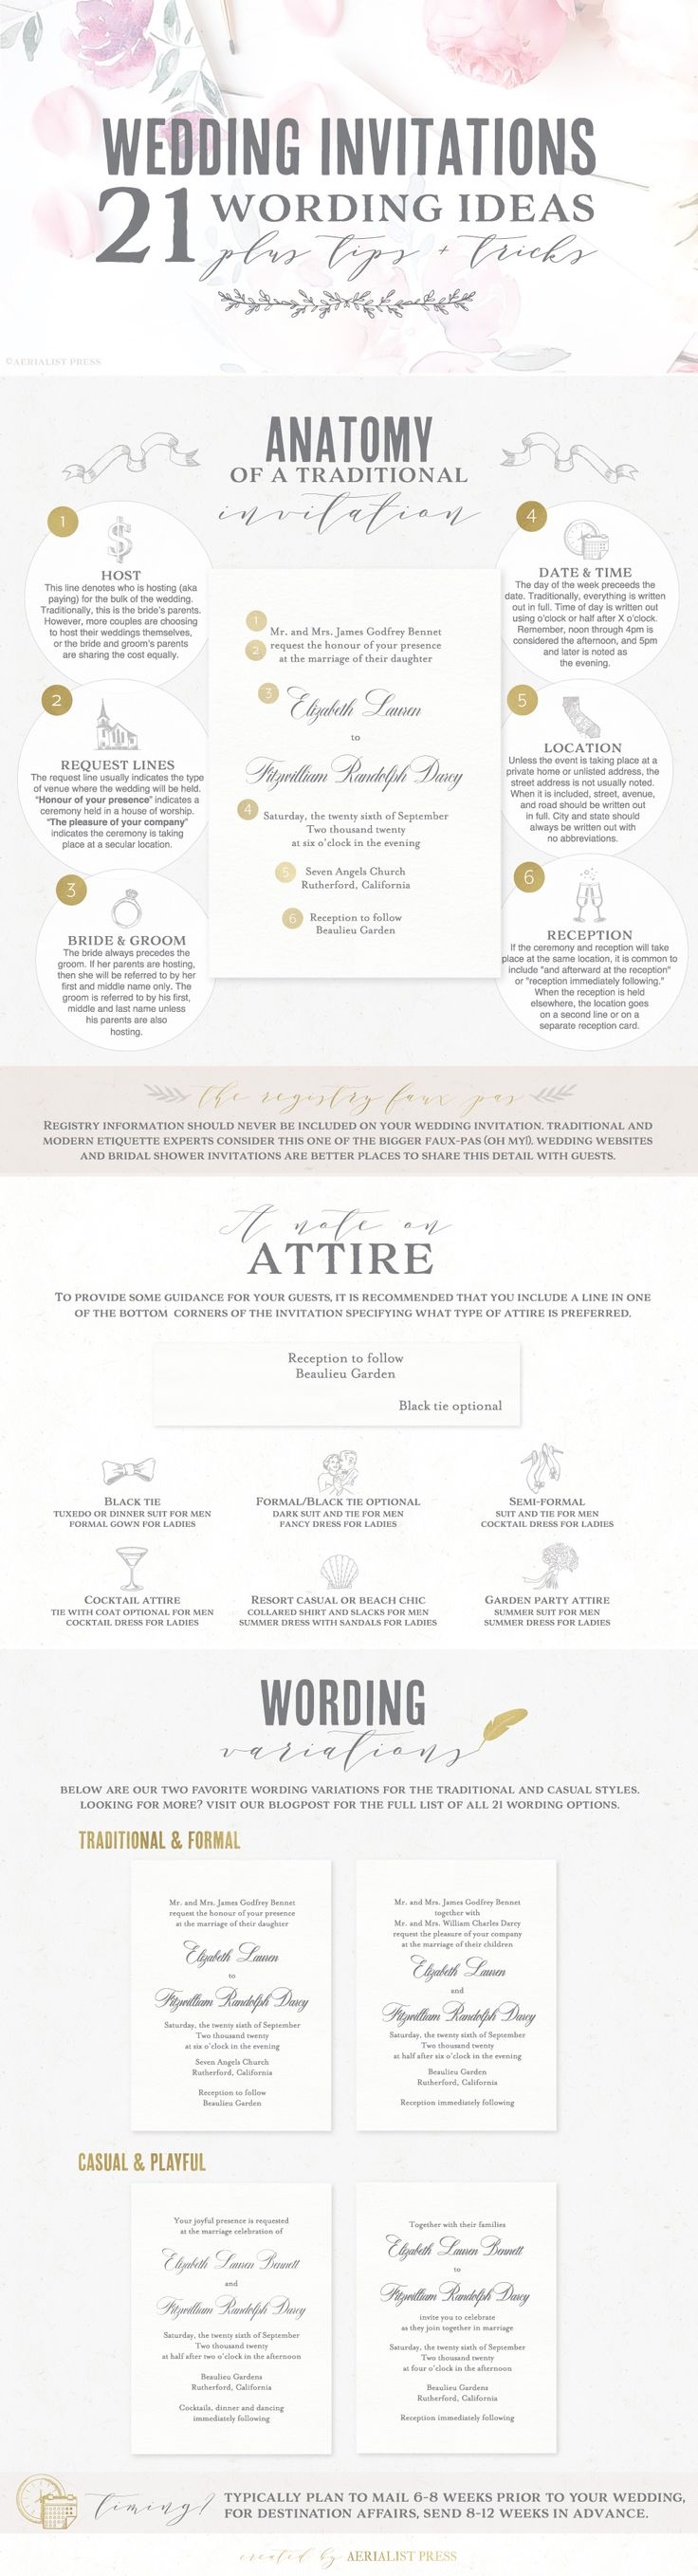 Best 25 wedding invitation wording ideas on pinterest wedding 21 best wedding invitation wording ideas aerialist press wedding etiquette guide junglespirit Gallery